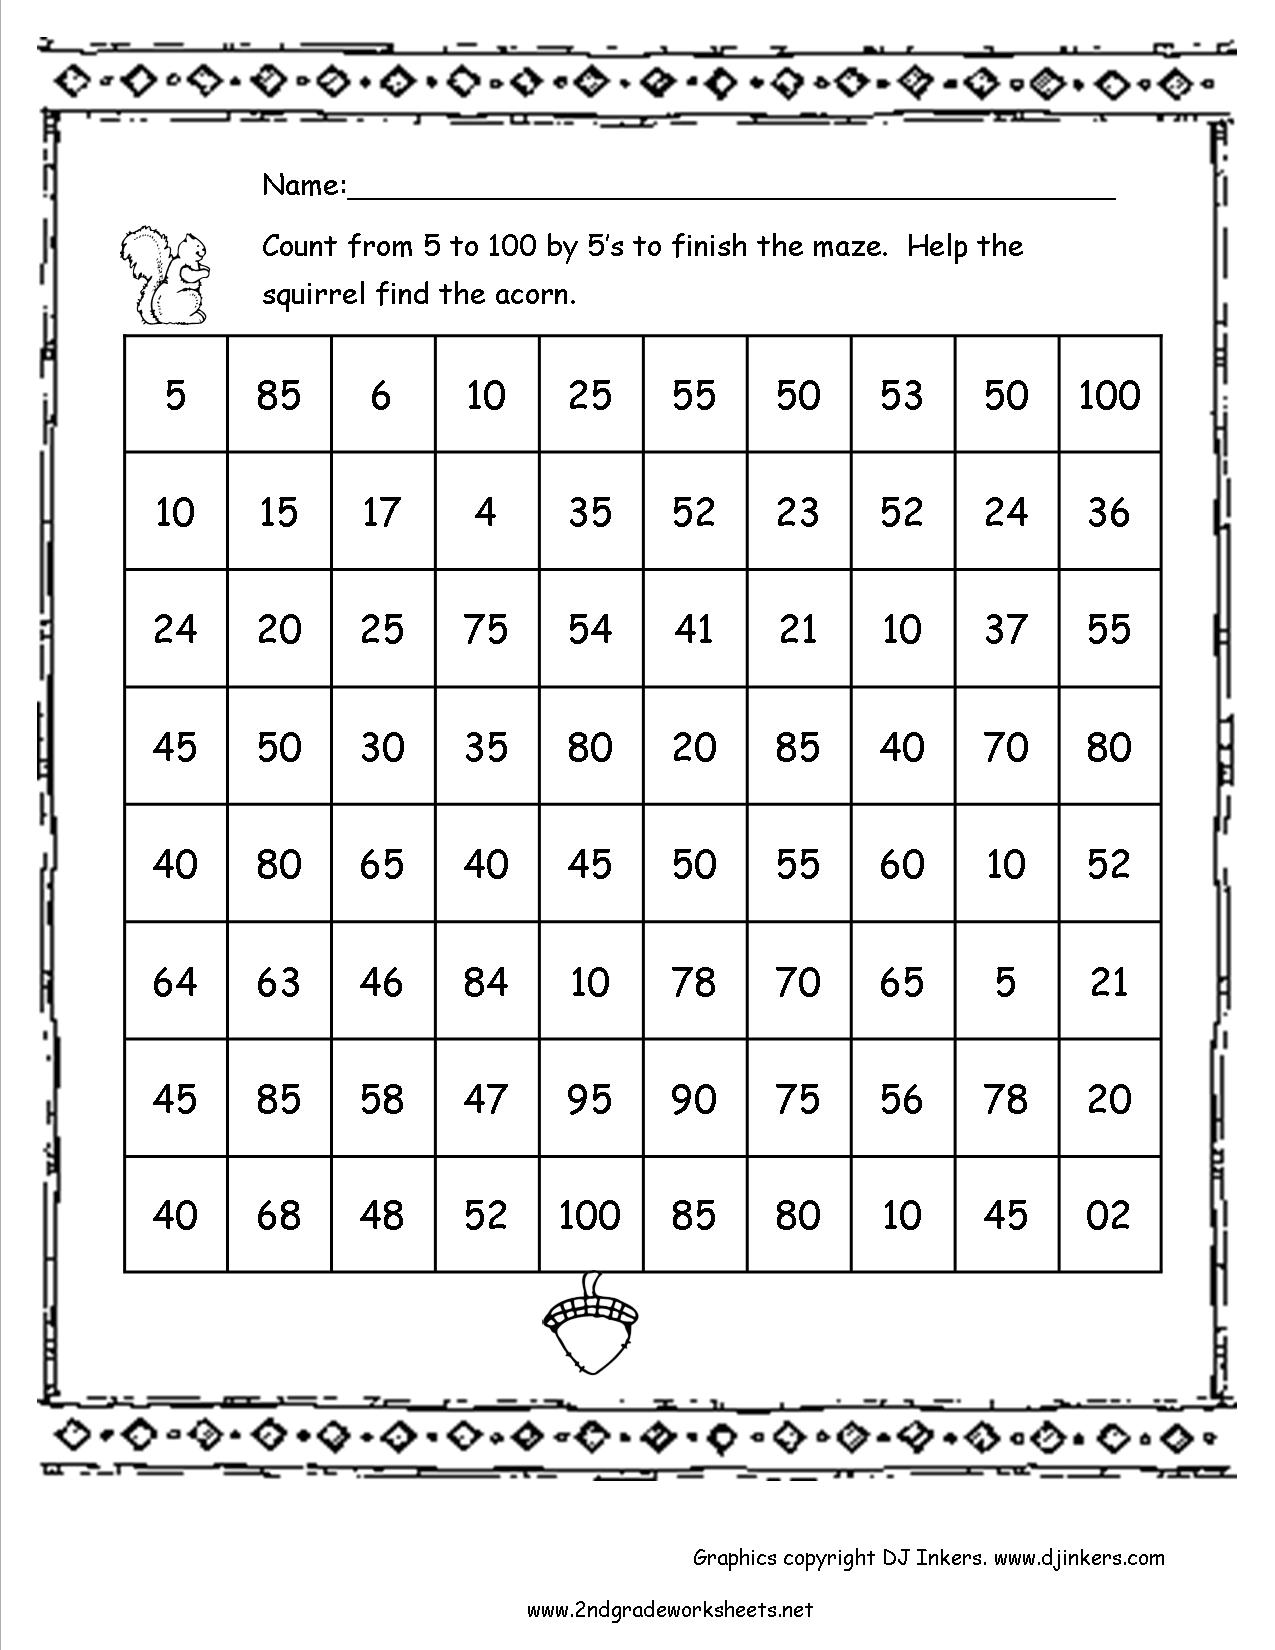 11 Best Images Of Worksheets Three Year Old Activities